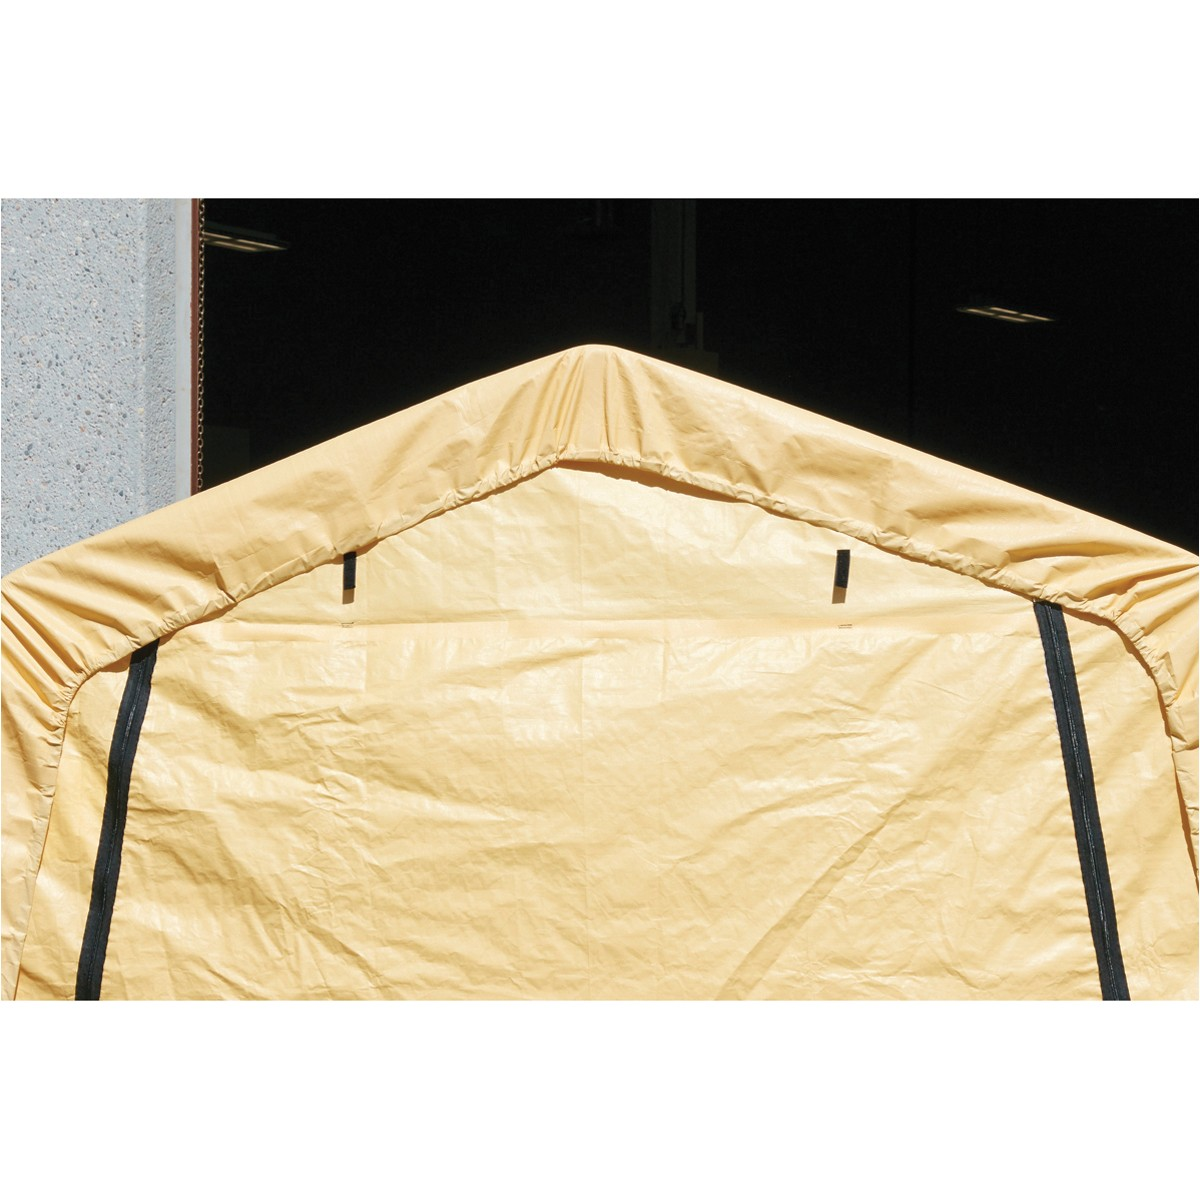 Harbor Freight Portable Garage Replacement Cover | AdinaPorter